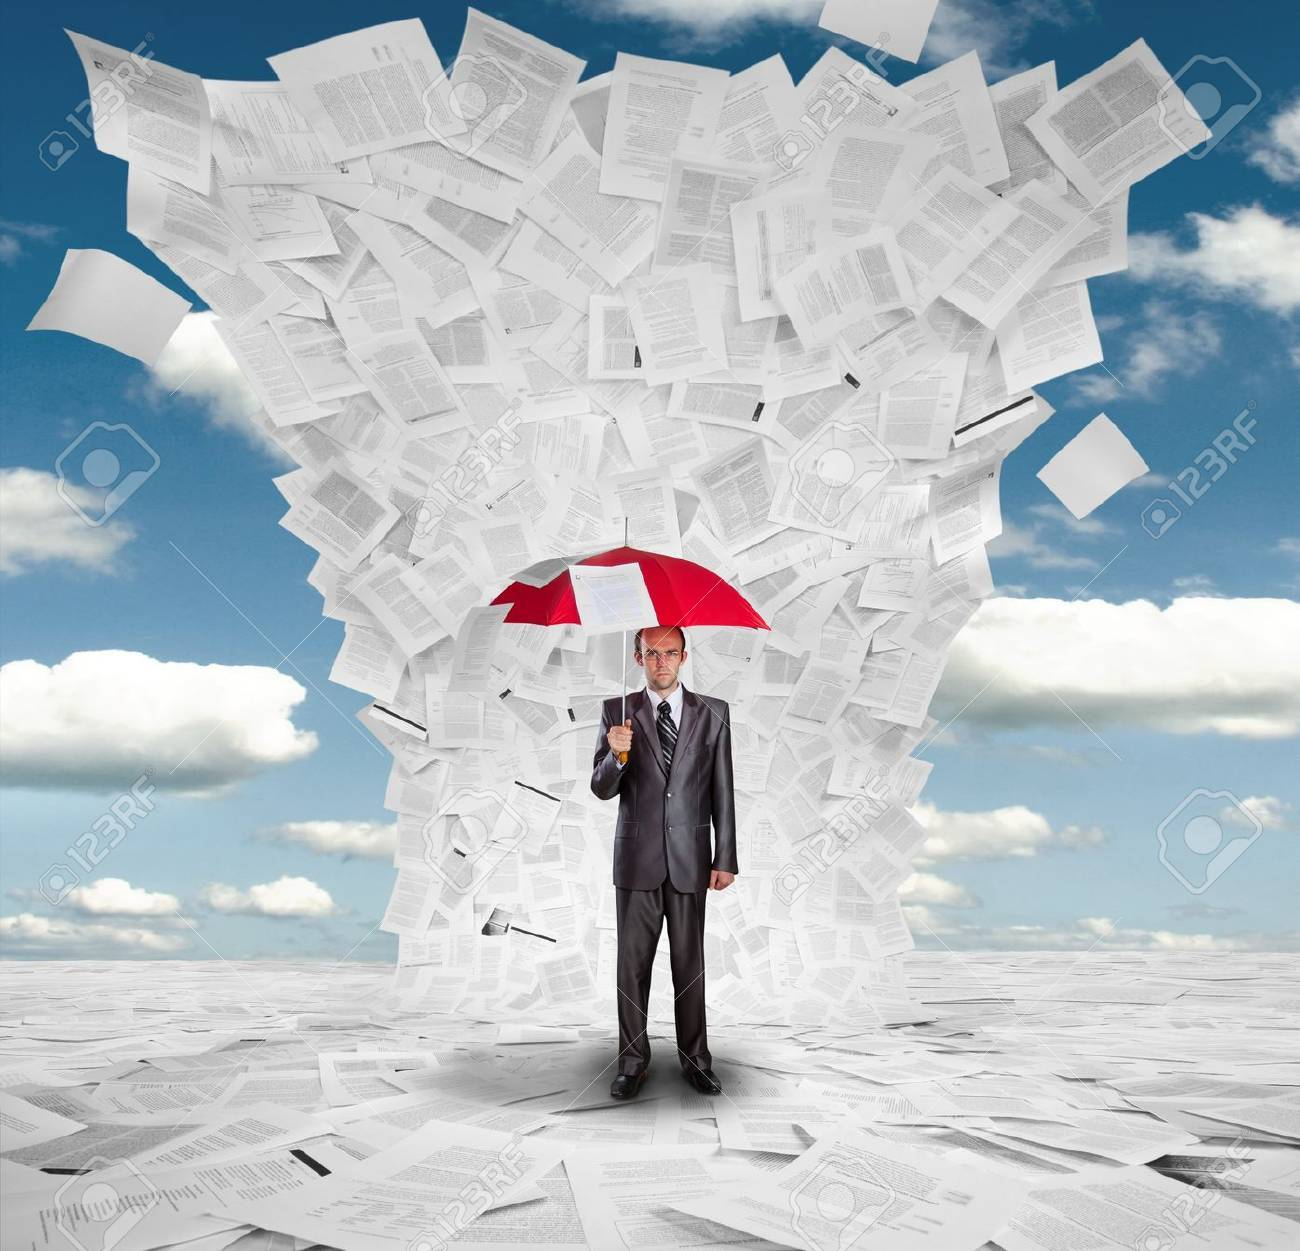 Serious businessman with red umbrella under huge wave of documents Stock Photo - 18072299